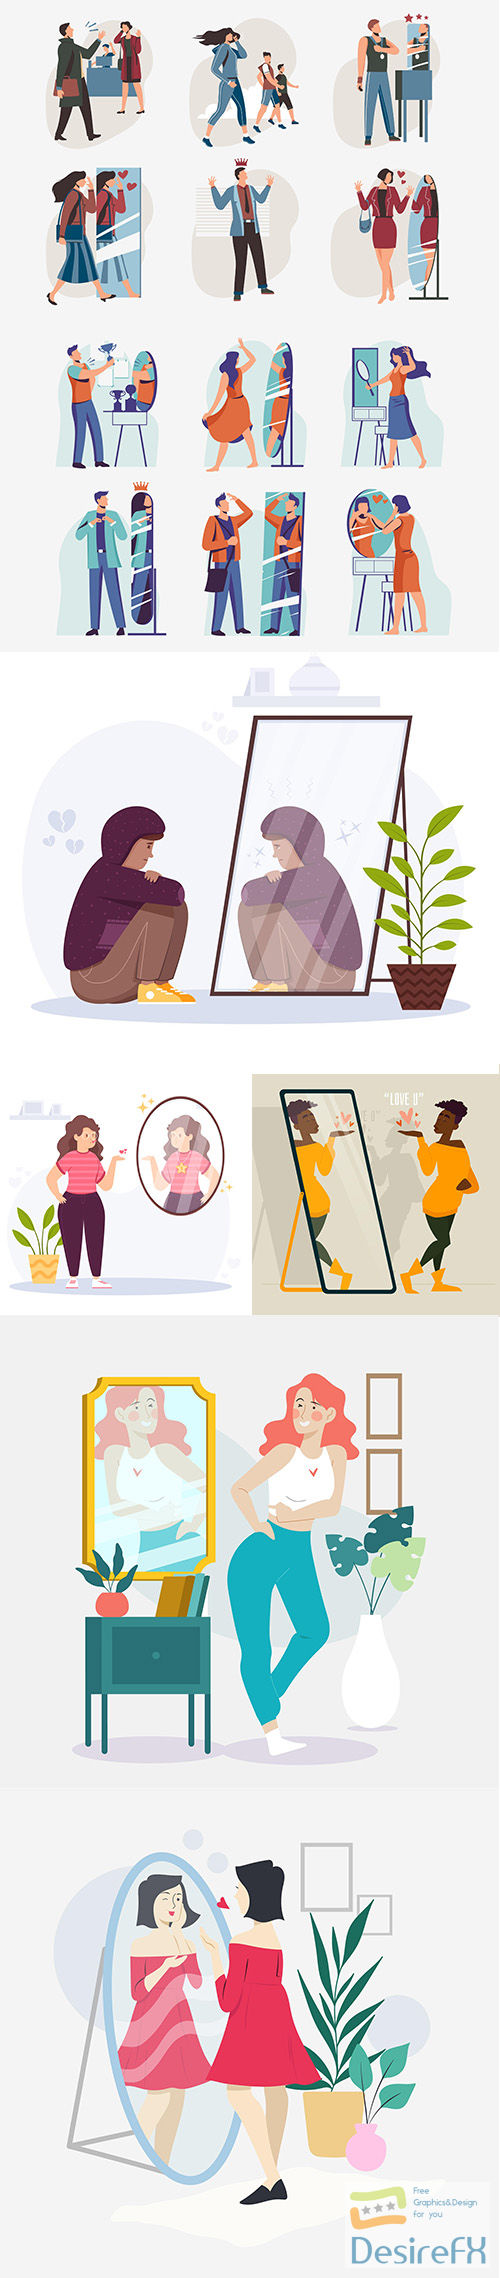 High self-esteem illustration collection with people